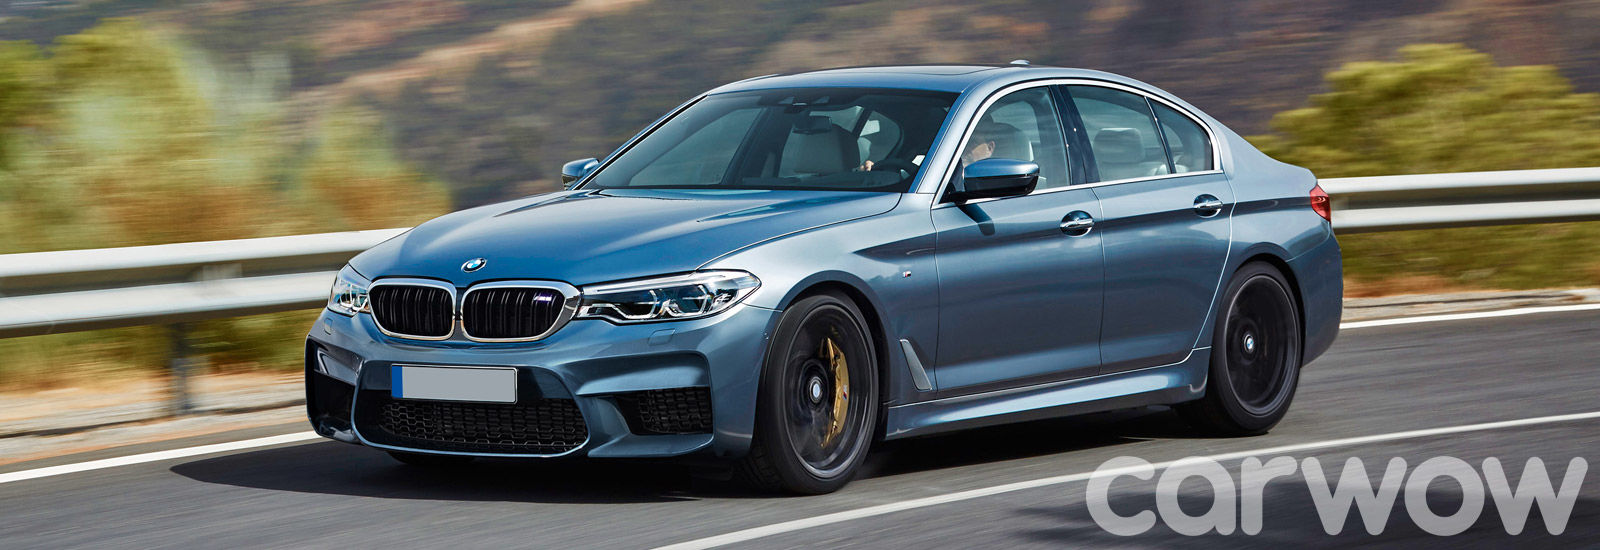 2017 bmw m5 price specs and release date carwow. Black Bedroom Furniture Sets. Home Design Ideas